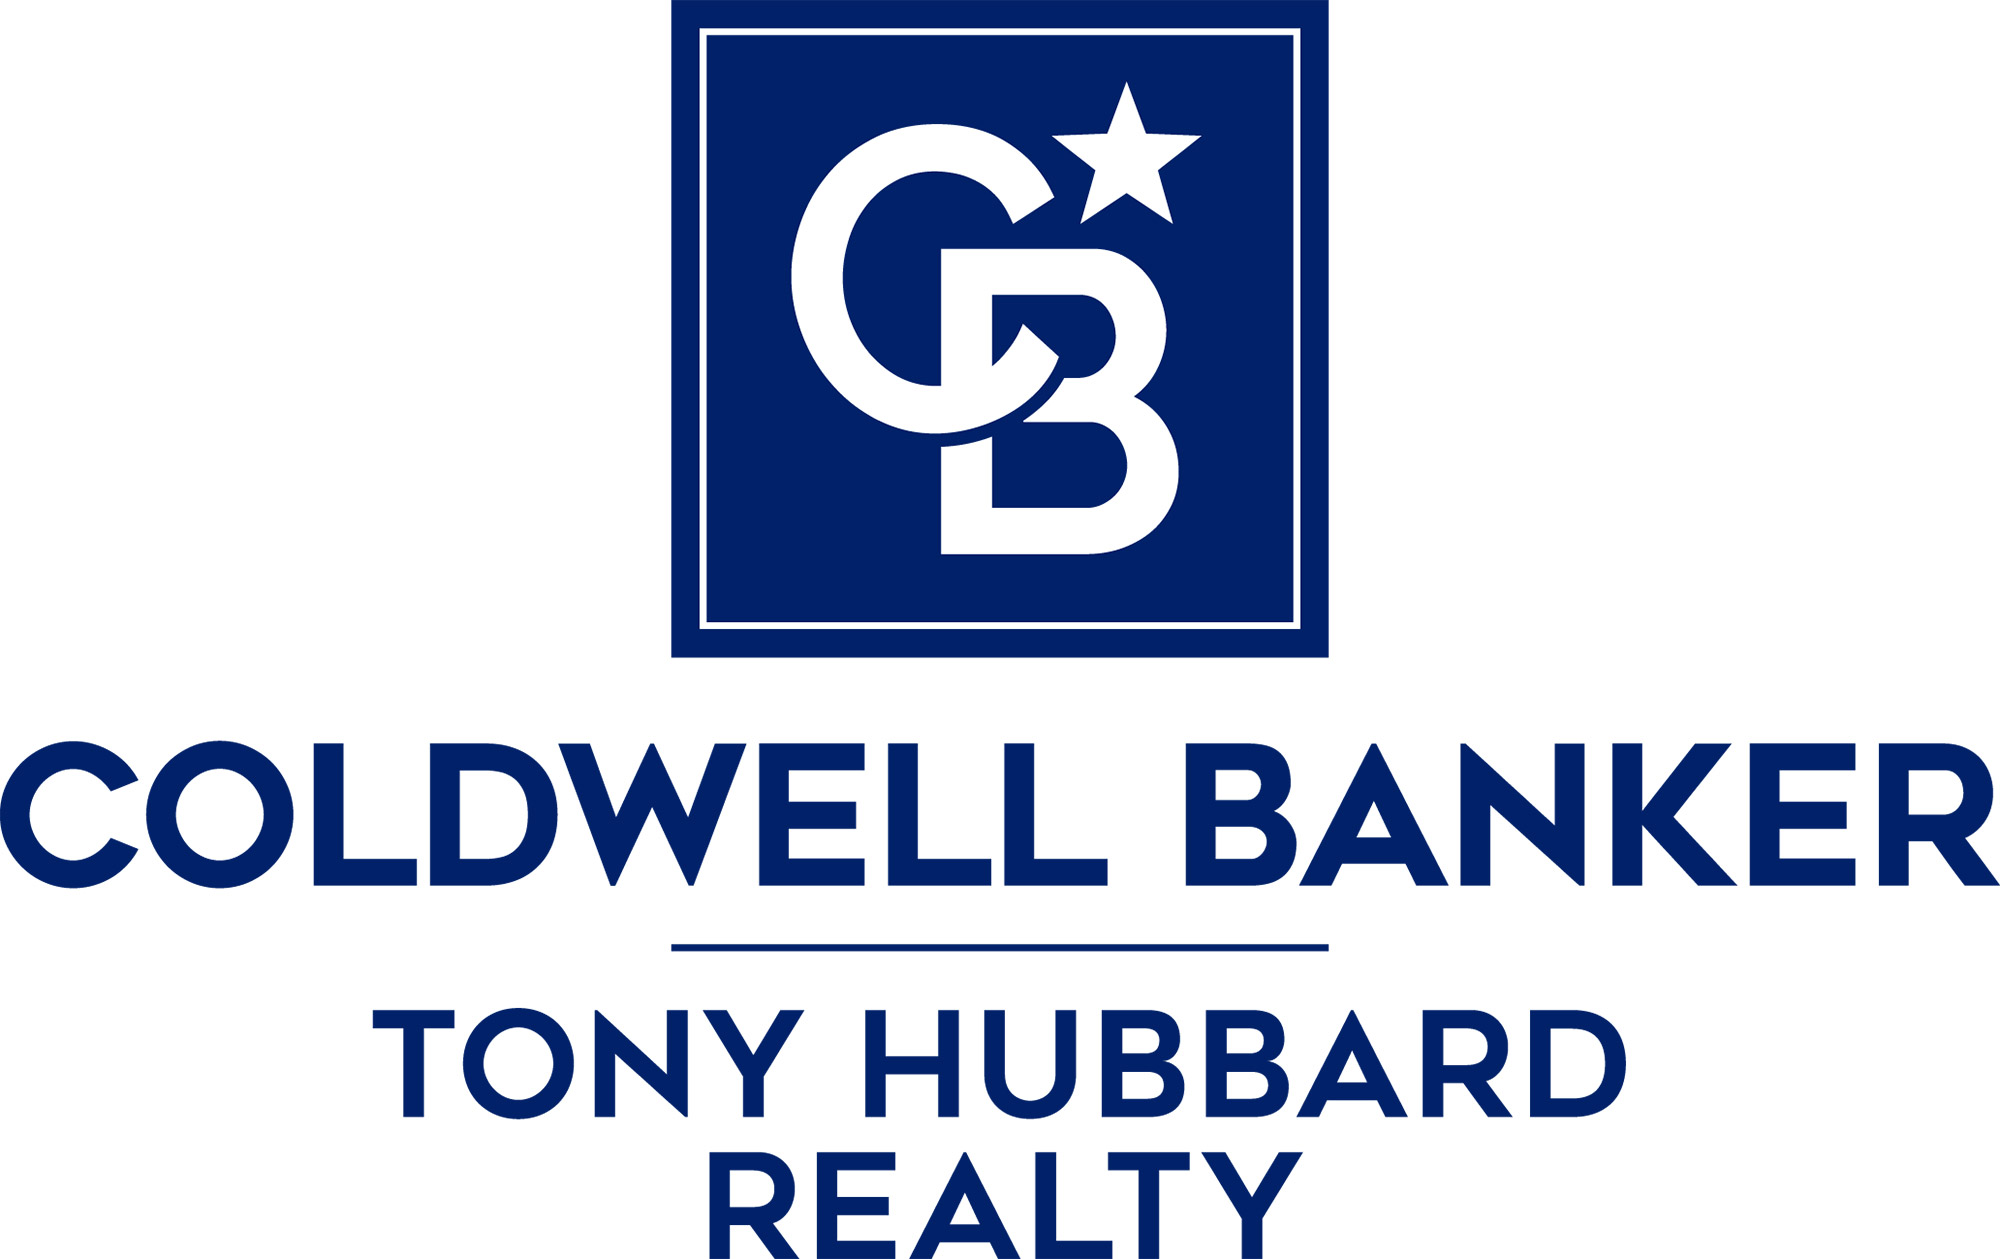 Paul Bills - Coldwell Banker Tony Hubbard